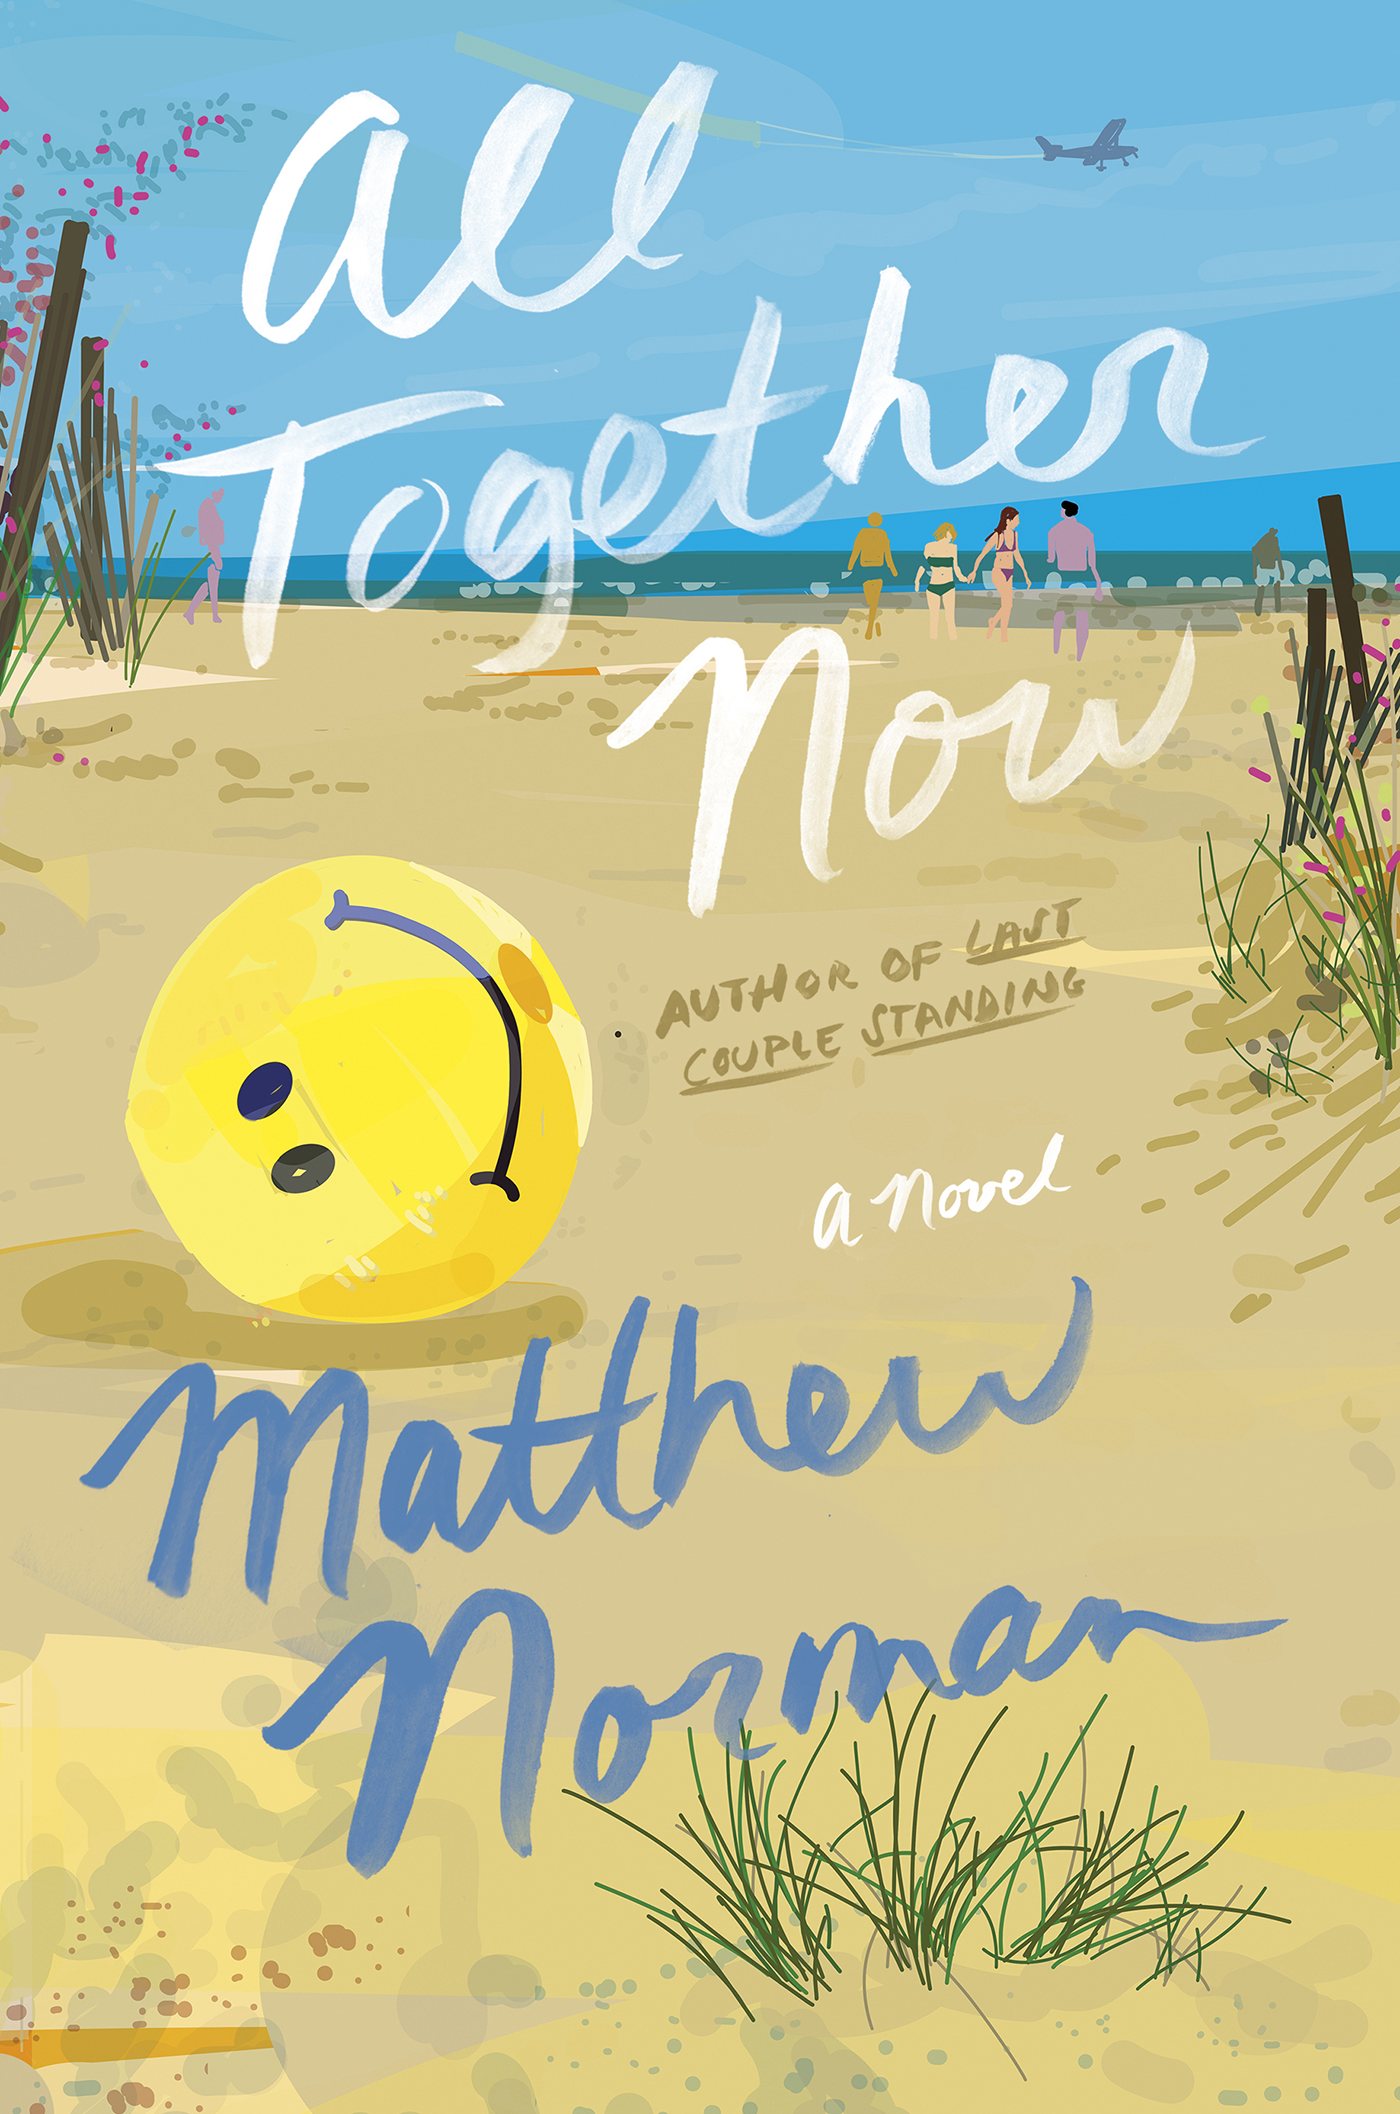 All Together Now Release Date? Matthew Norman 2021 New Releases